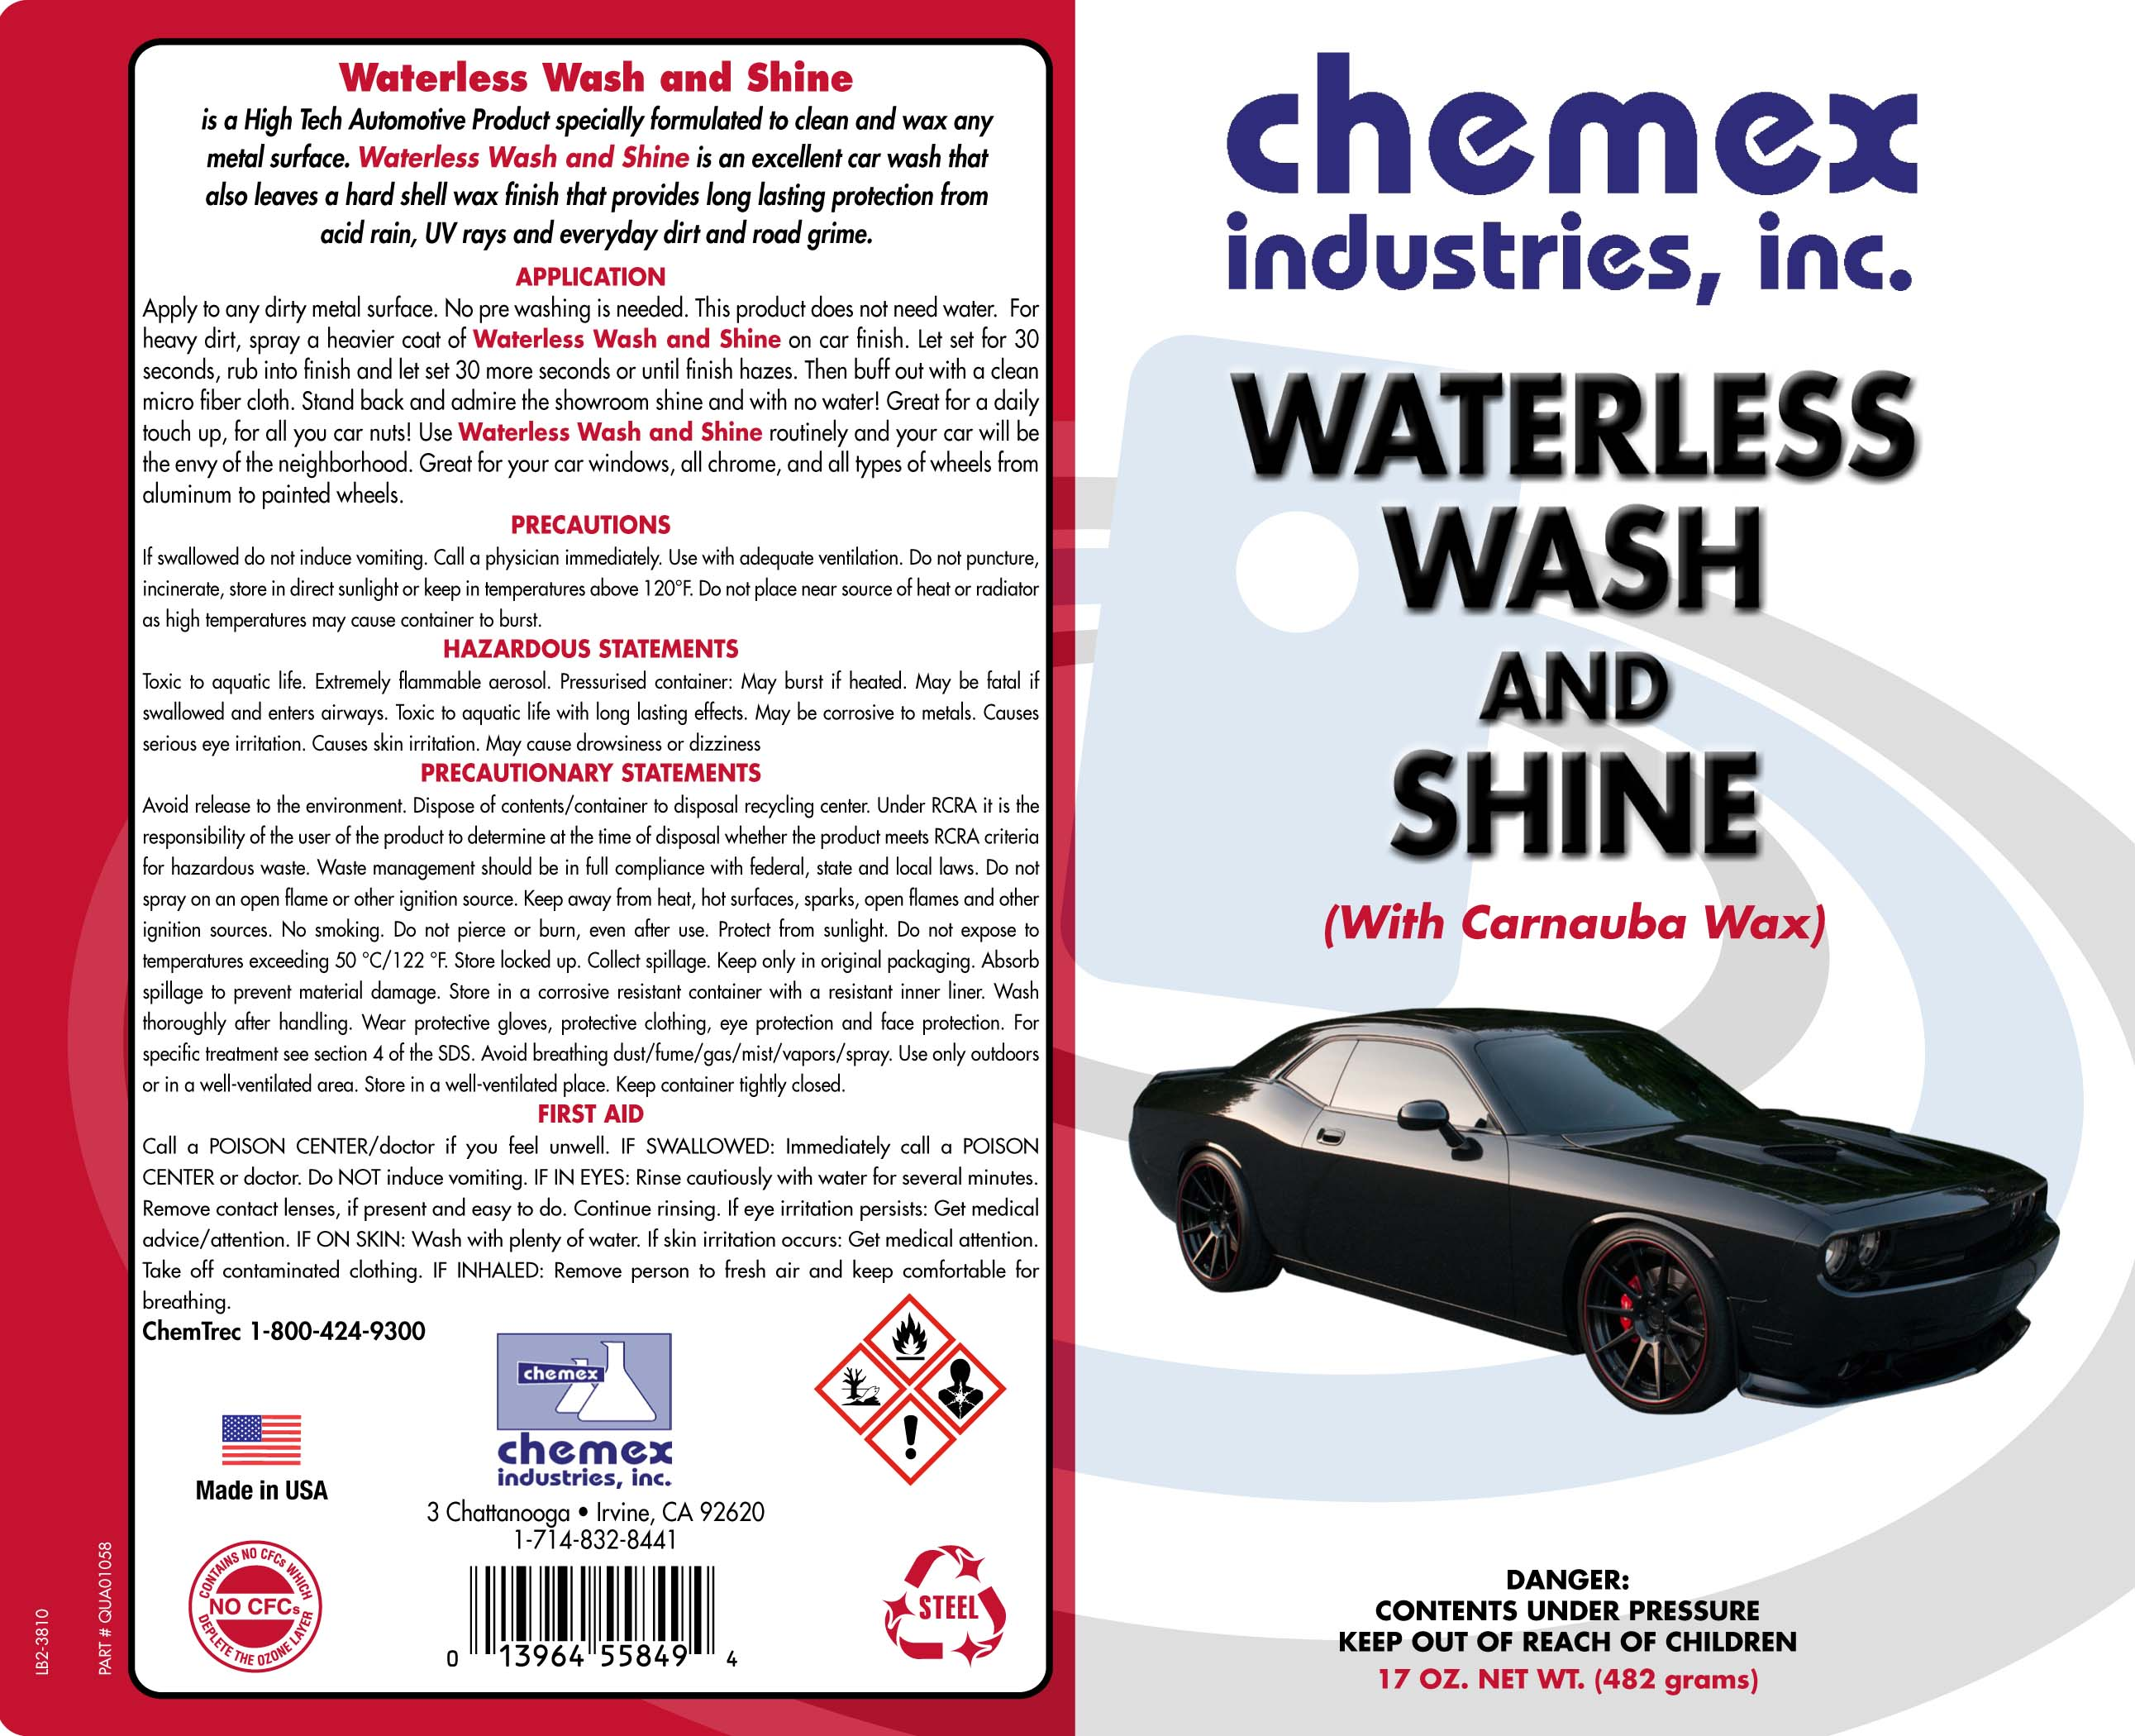 waterless wash and shine